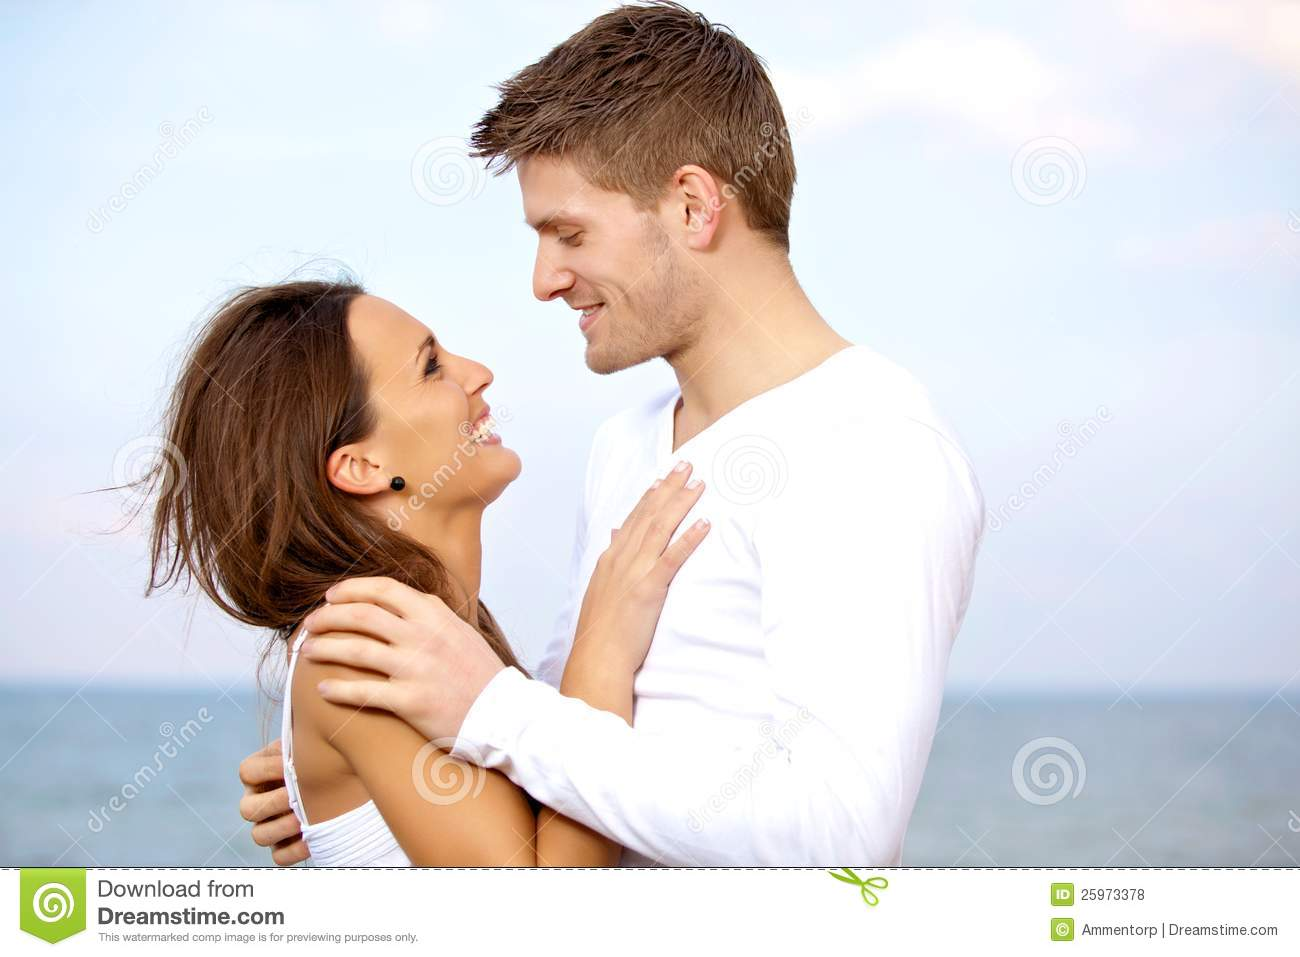 Photo: https://thumbs.dreamstime.com/z/lovely-couple-looking-each-other-affection-25973378.jpg